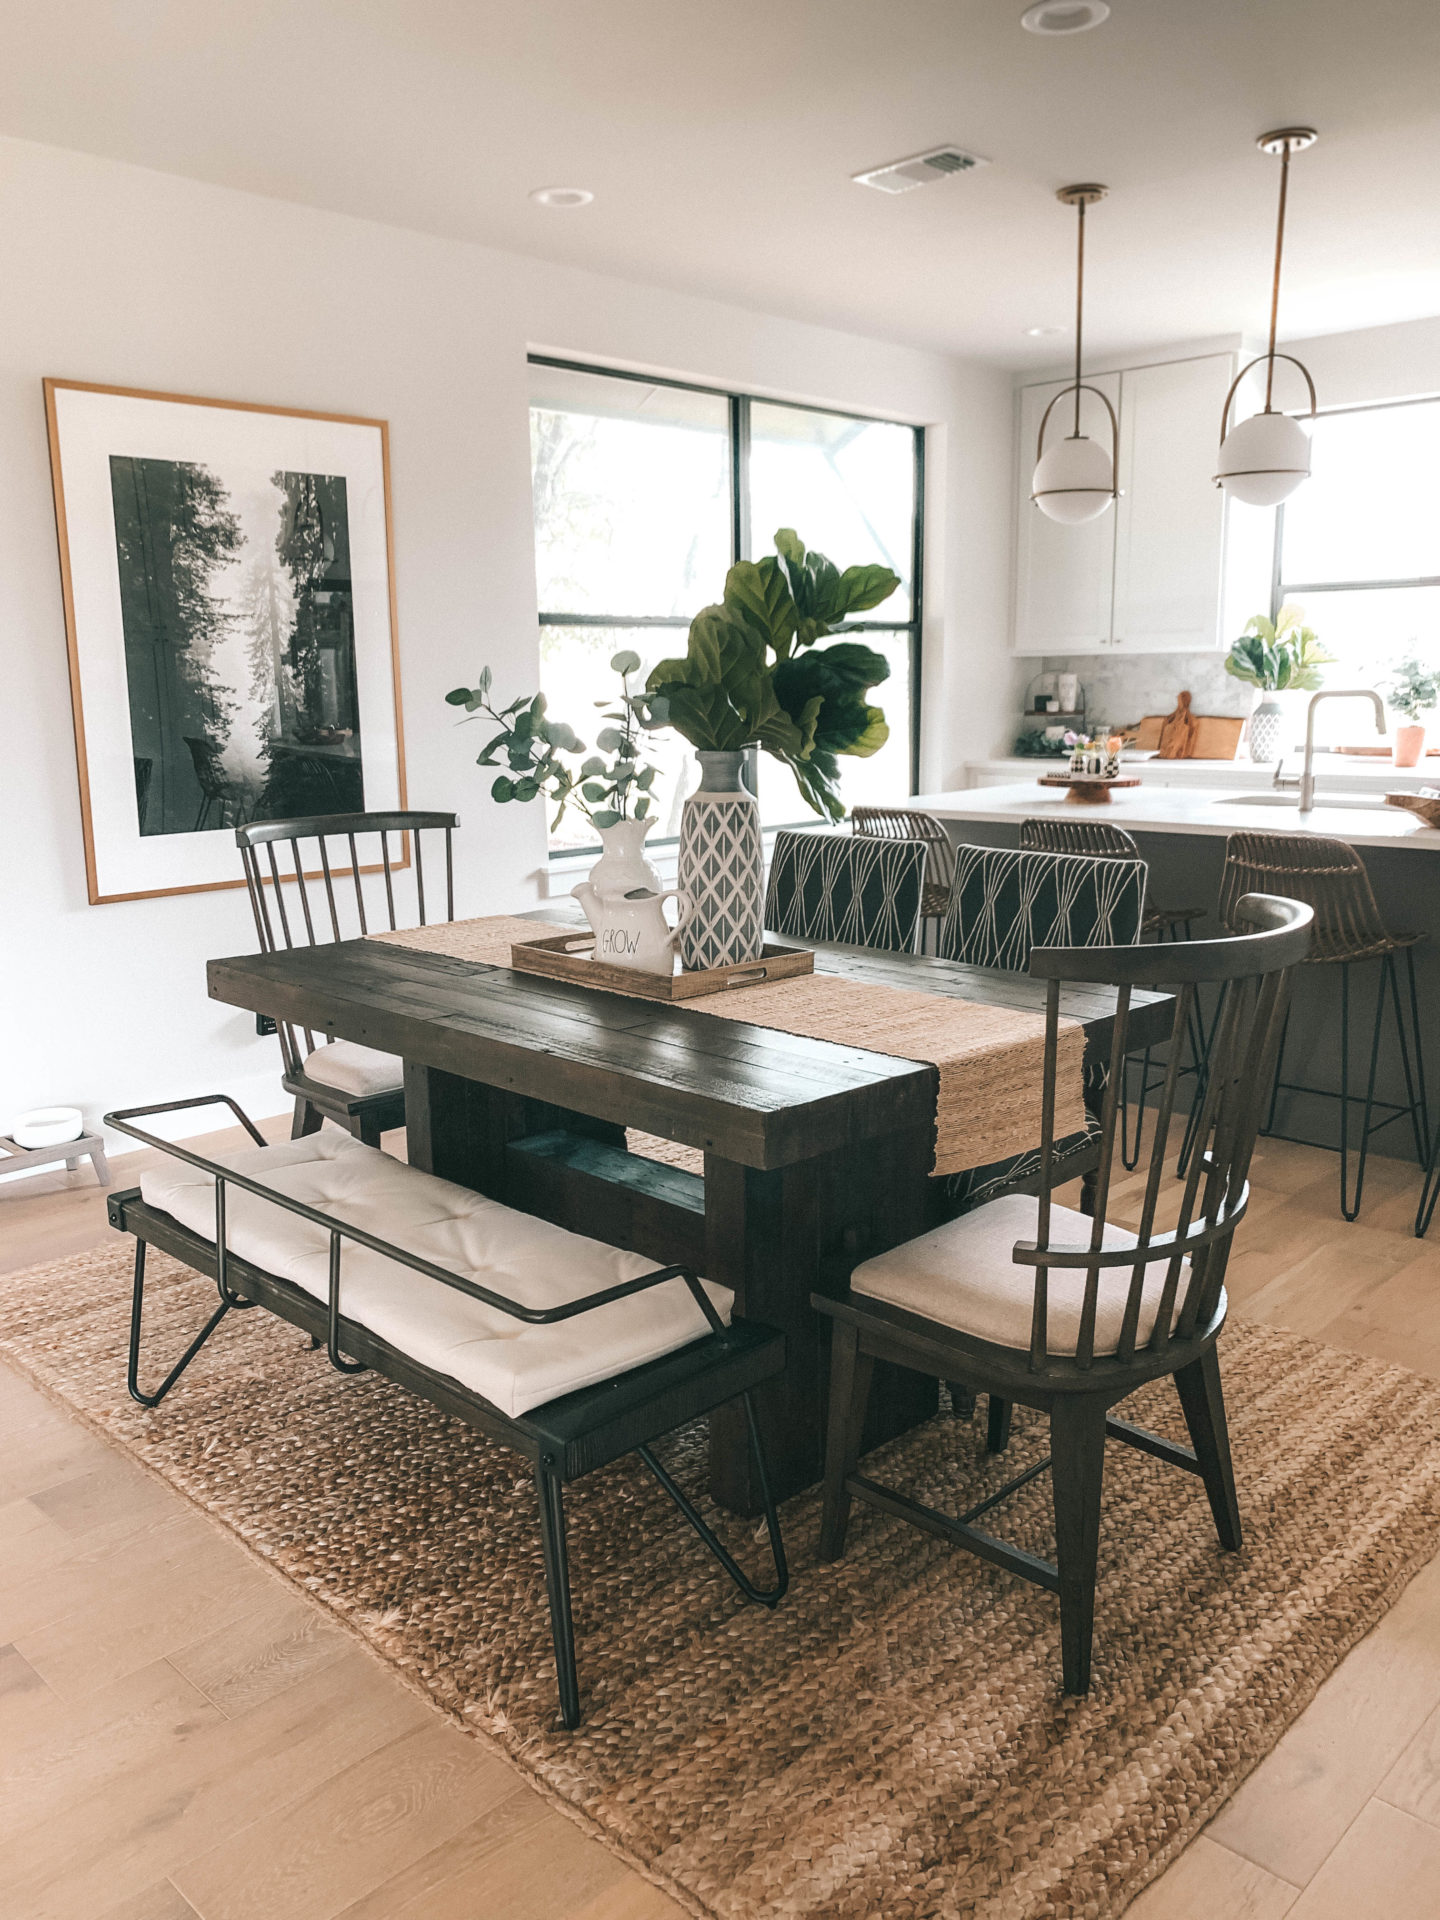 How to decorate your dining room for summer - Dressed to Kill